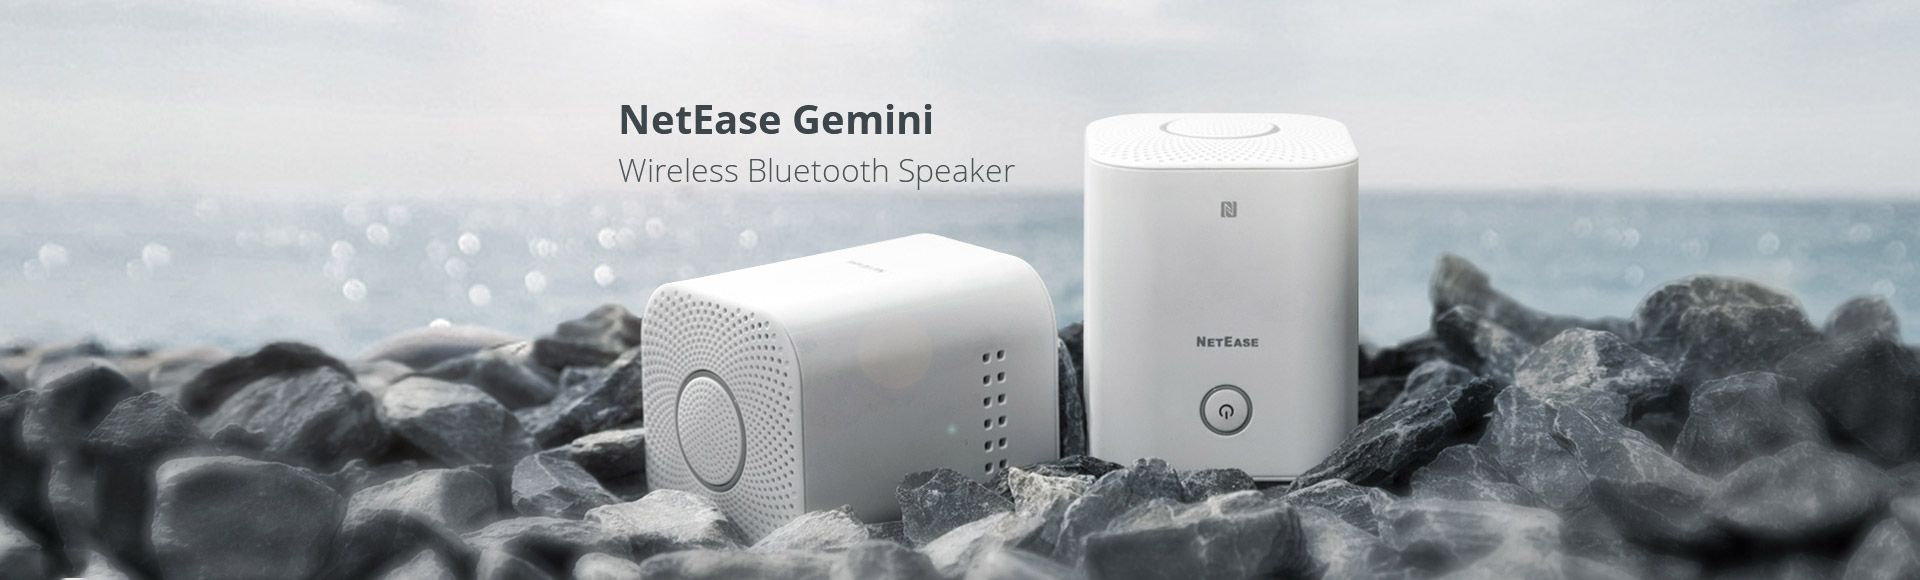 NetEase Gemini Wireless Bluetooth Speaker - HIFI sound connection Smart quick connection with super bass